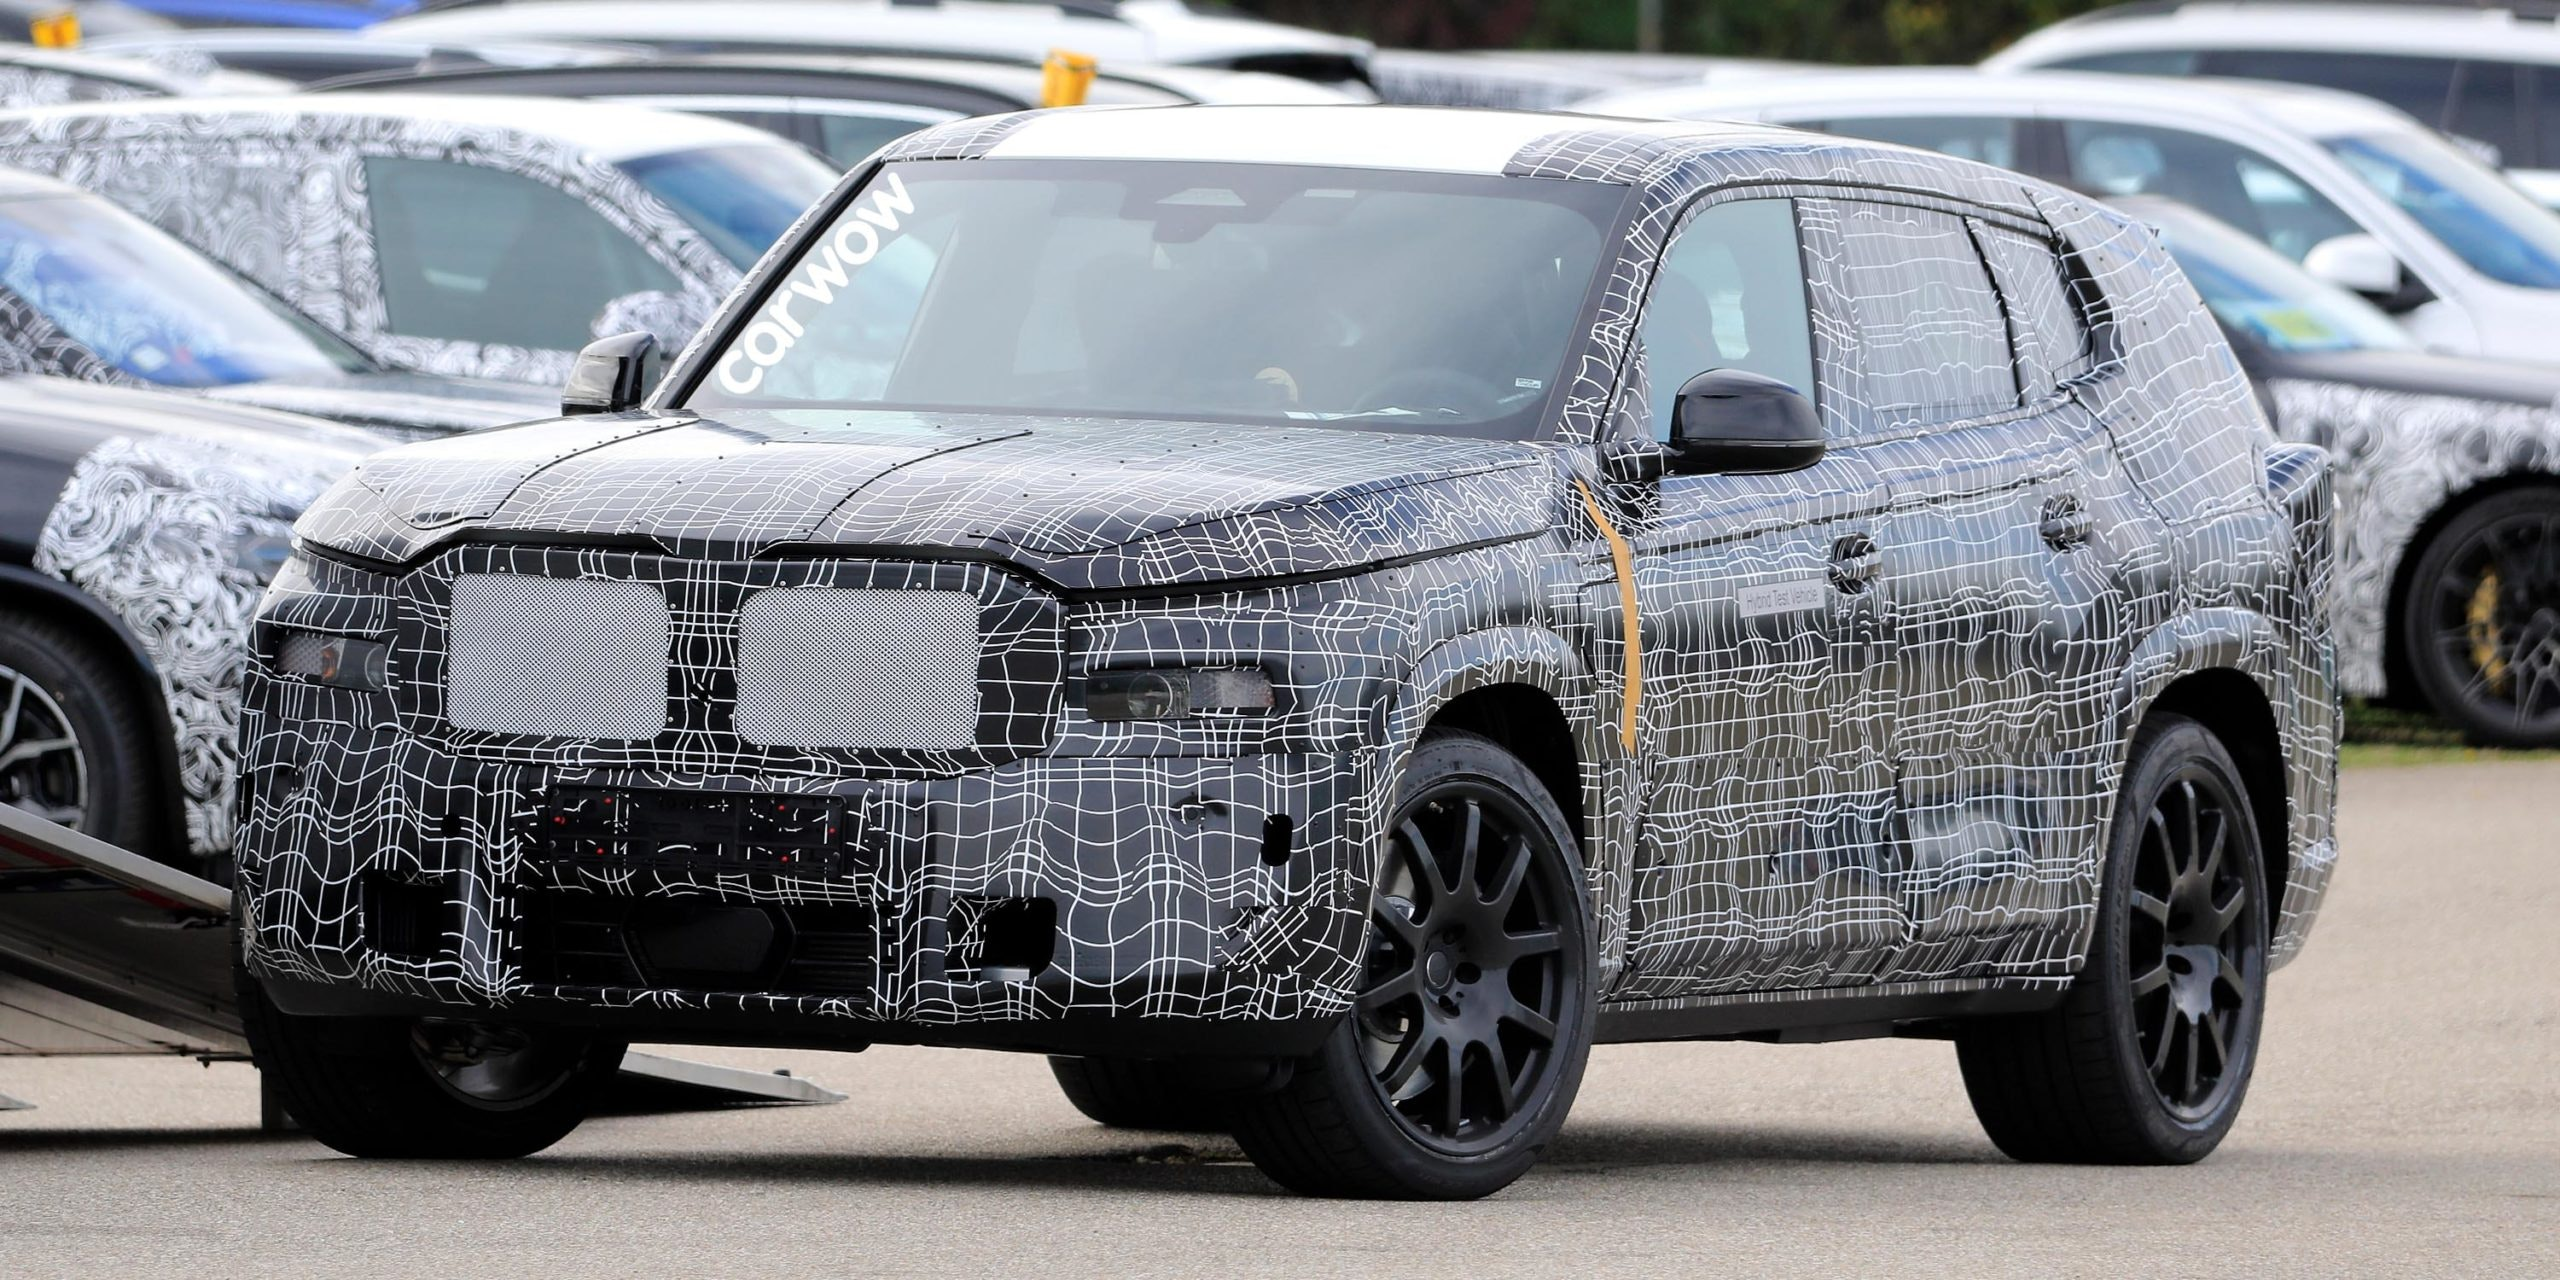 2022 Bmw X8 Spotted Price Specs And Release Date Carwow